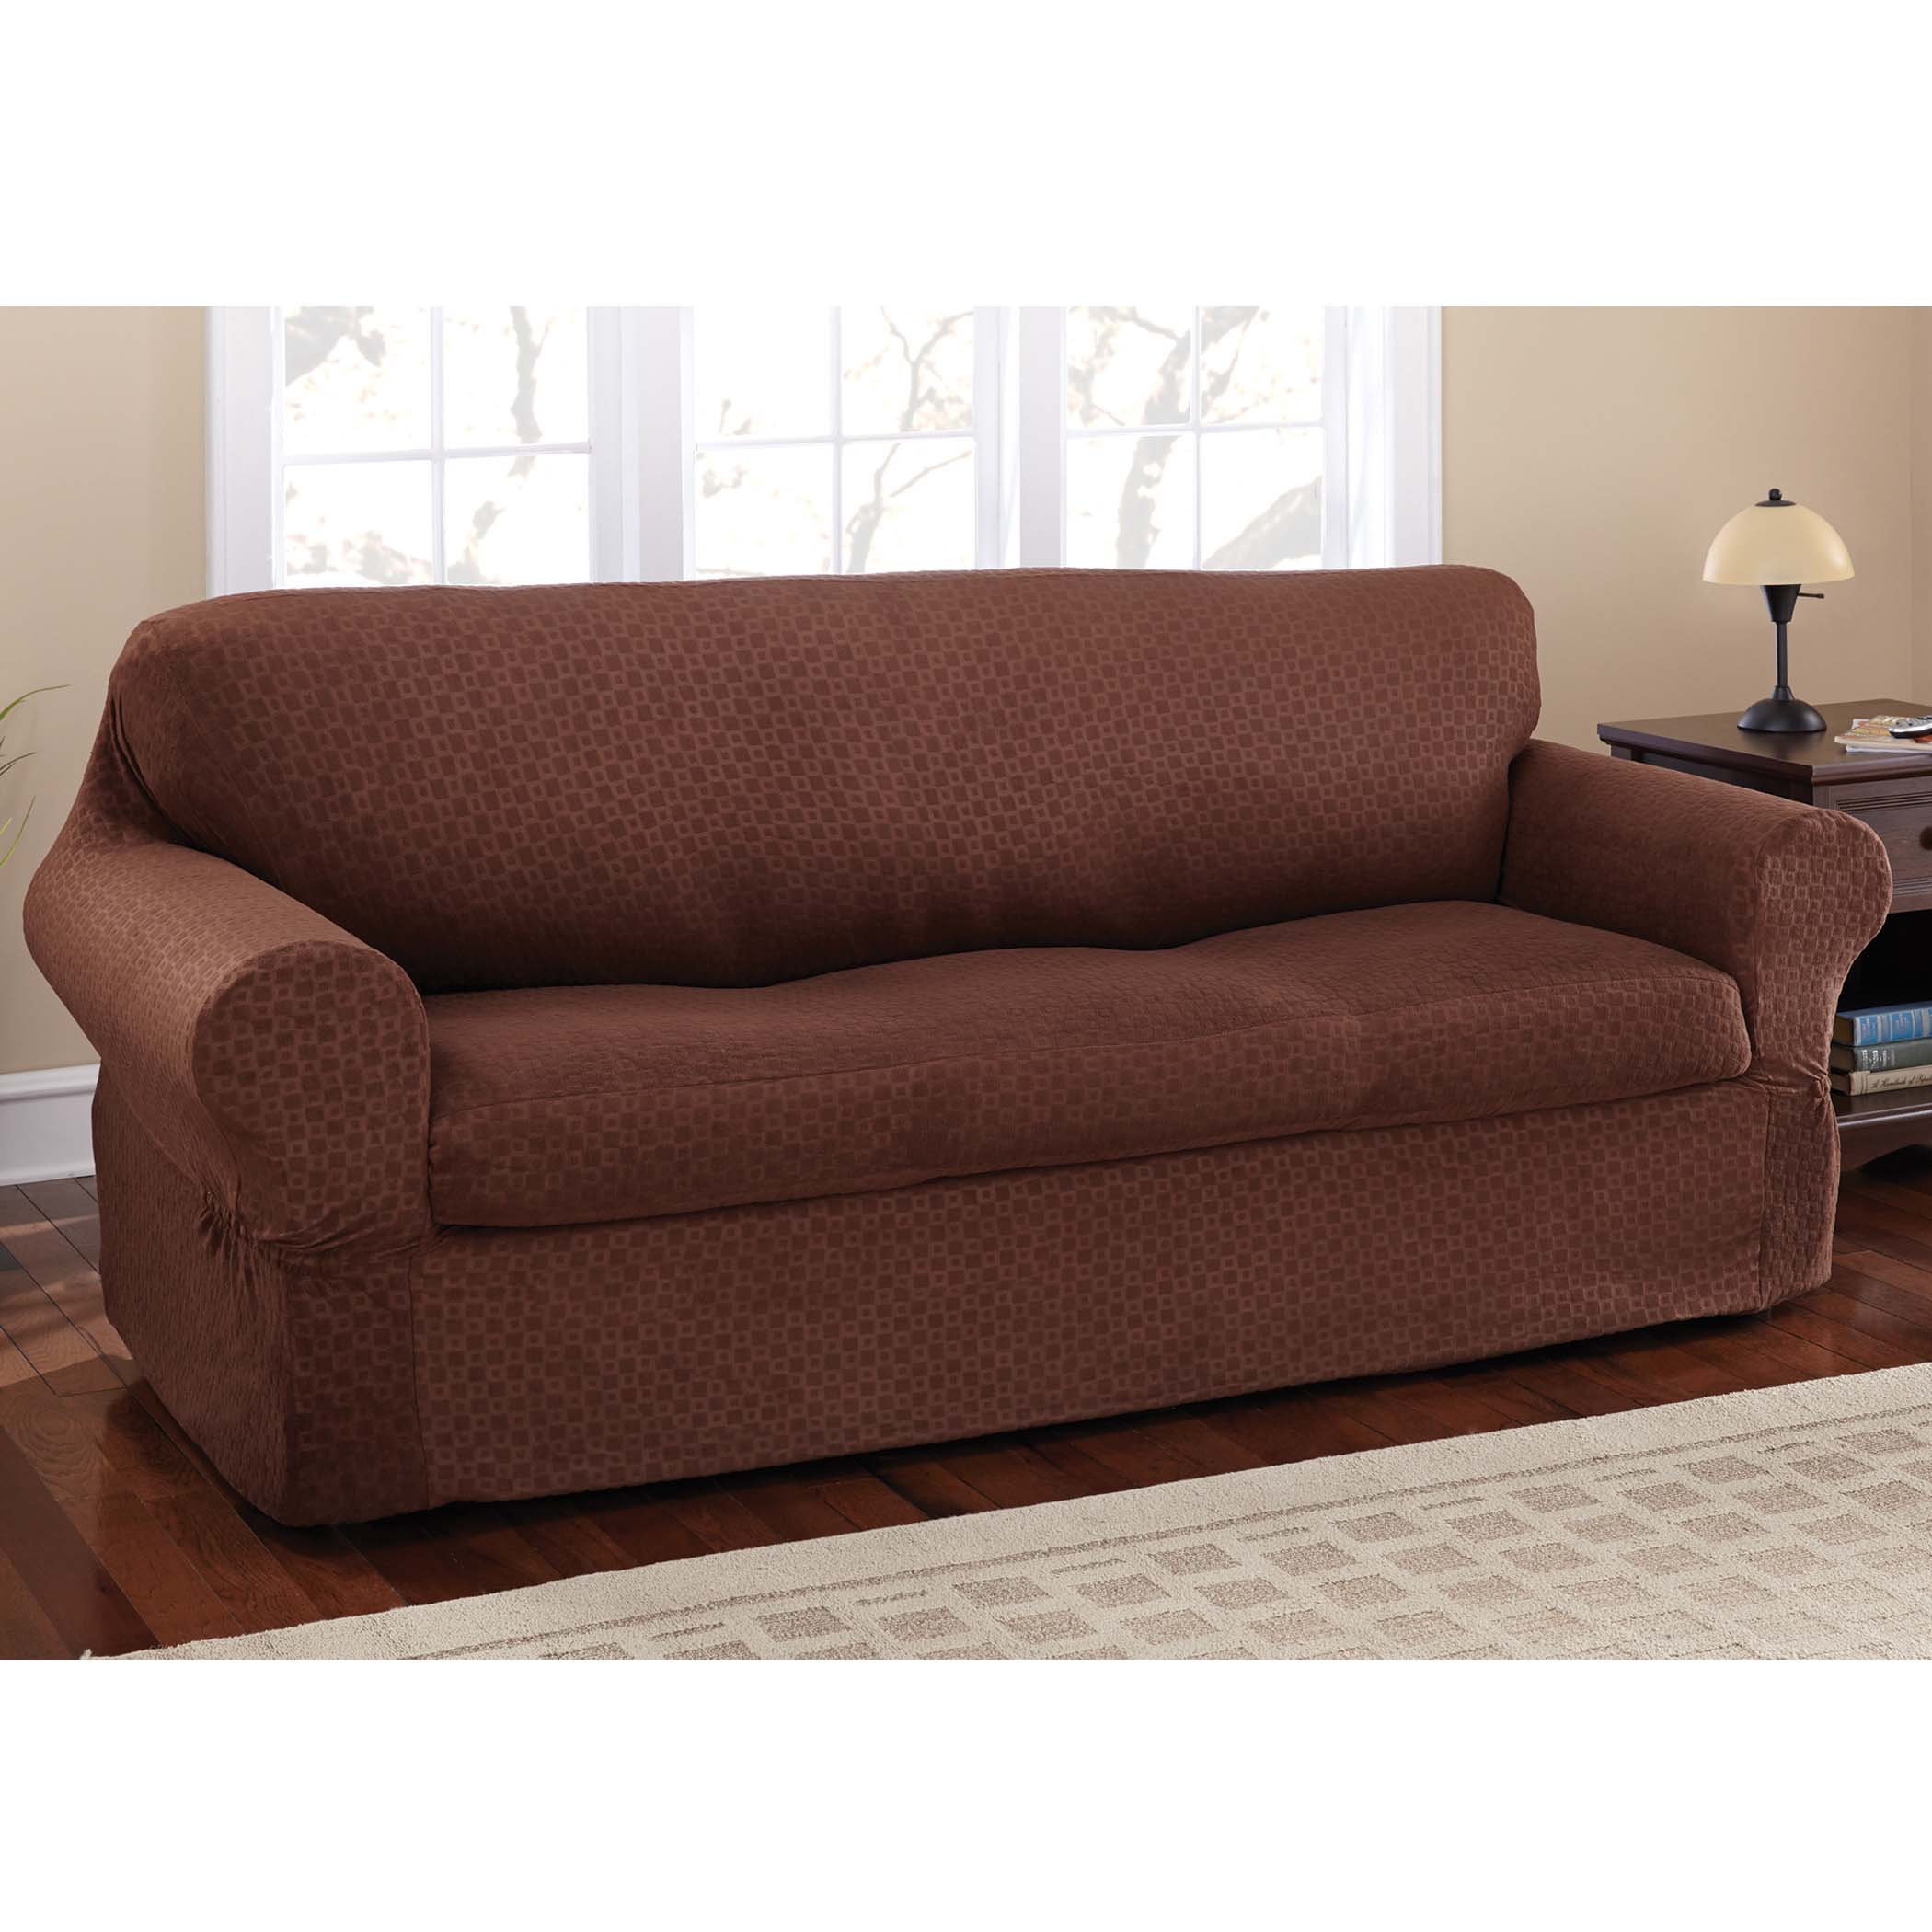 Mainstays Stretch Conrad 2 Piece Sofa Furniture Cover Slipcover